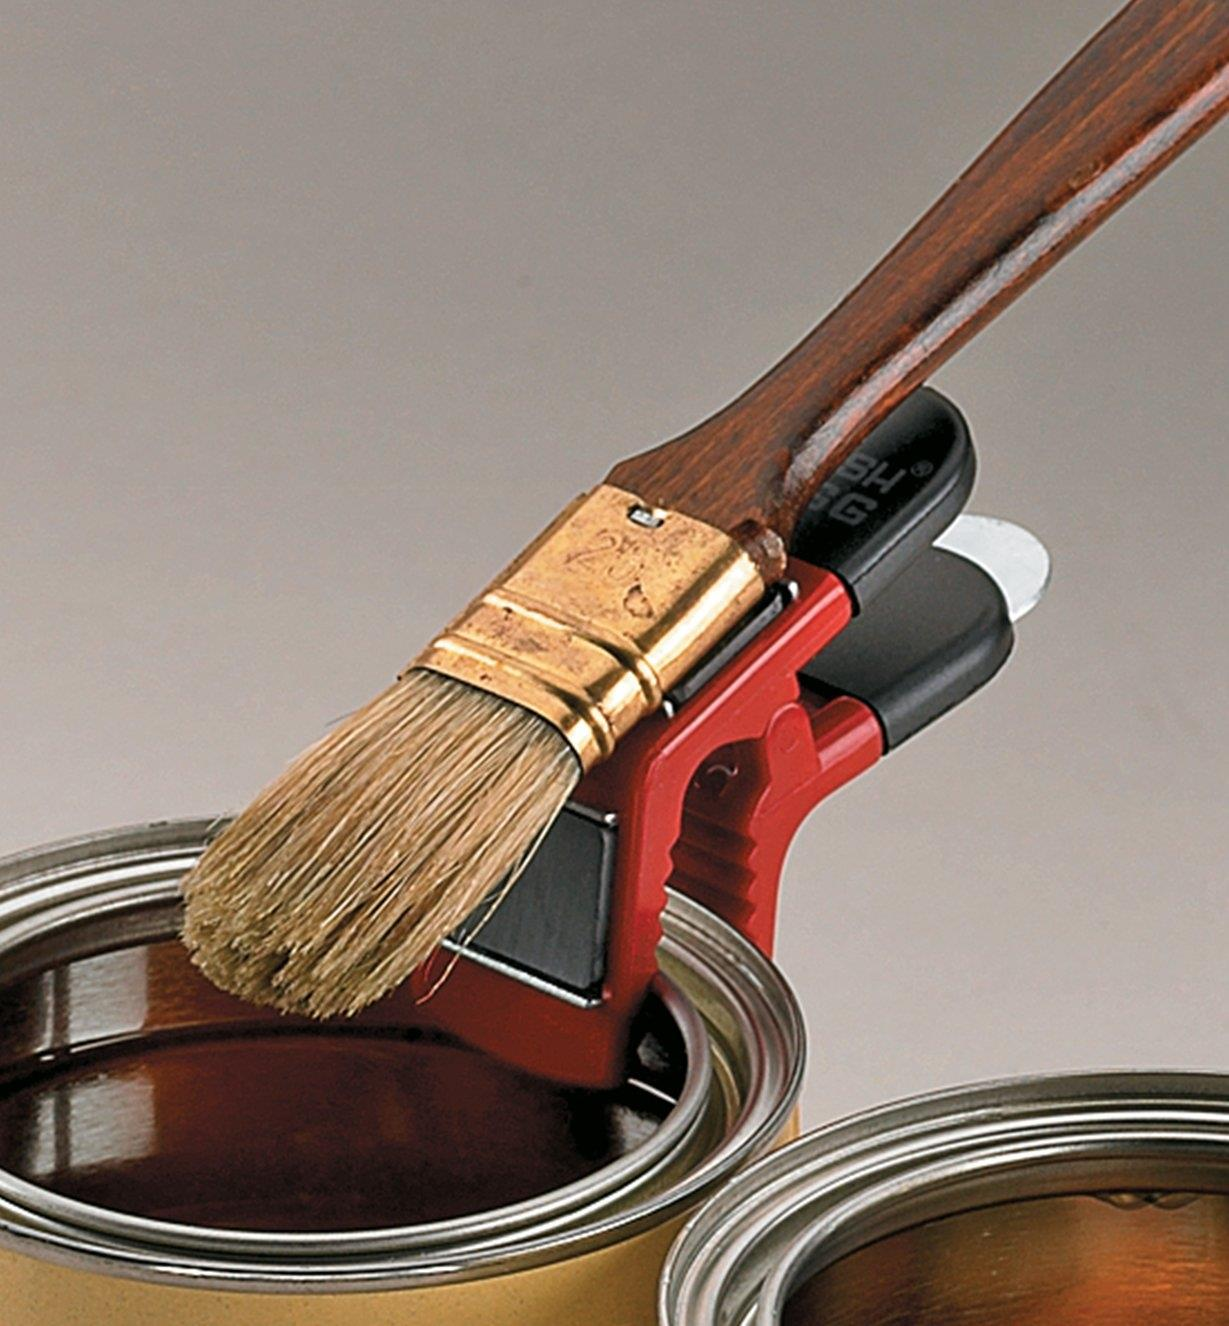 67K7402 - Magnetic Paintbrush Holder